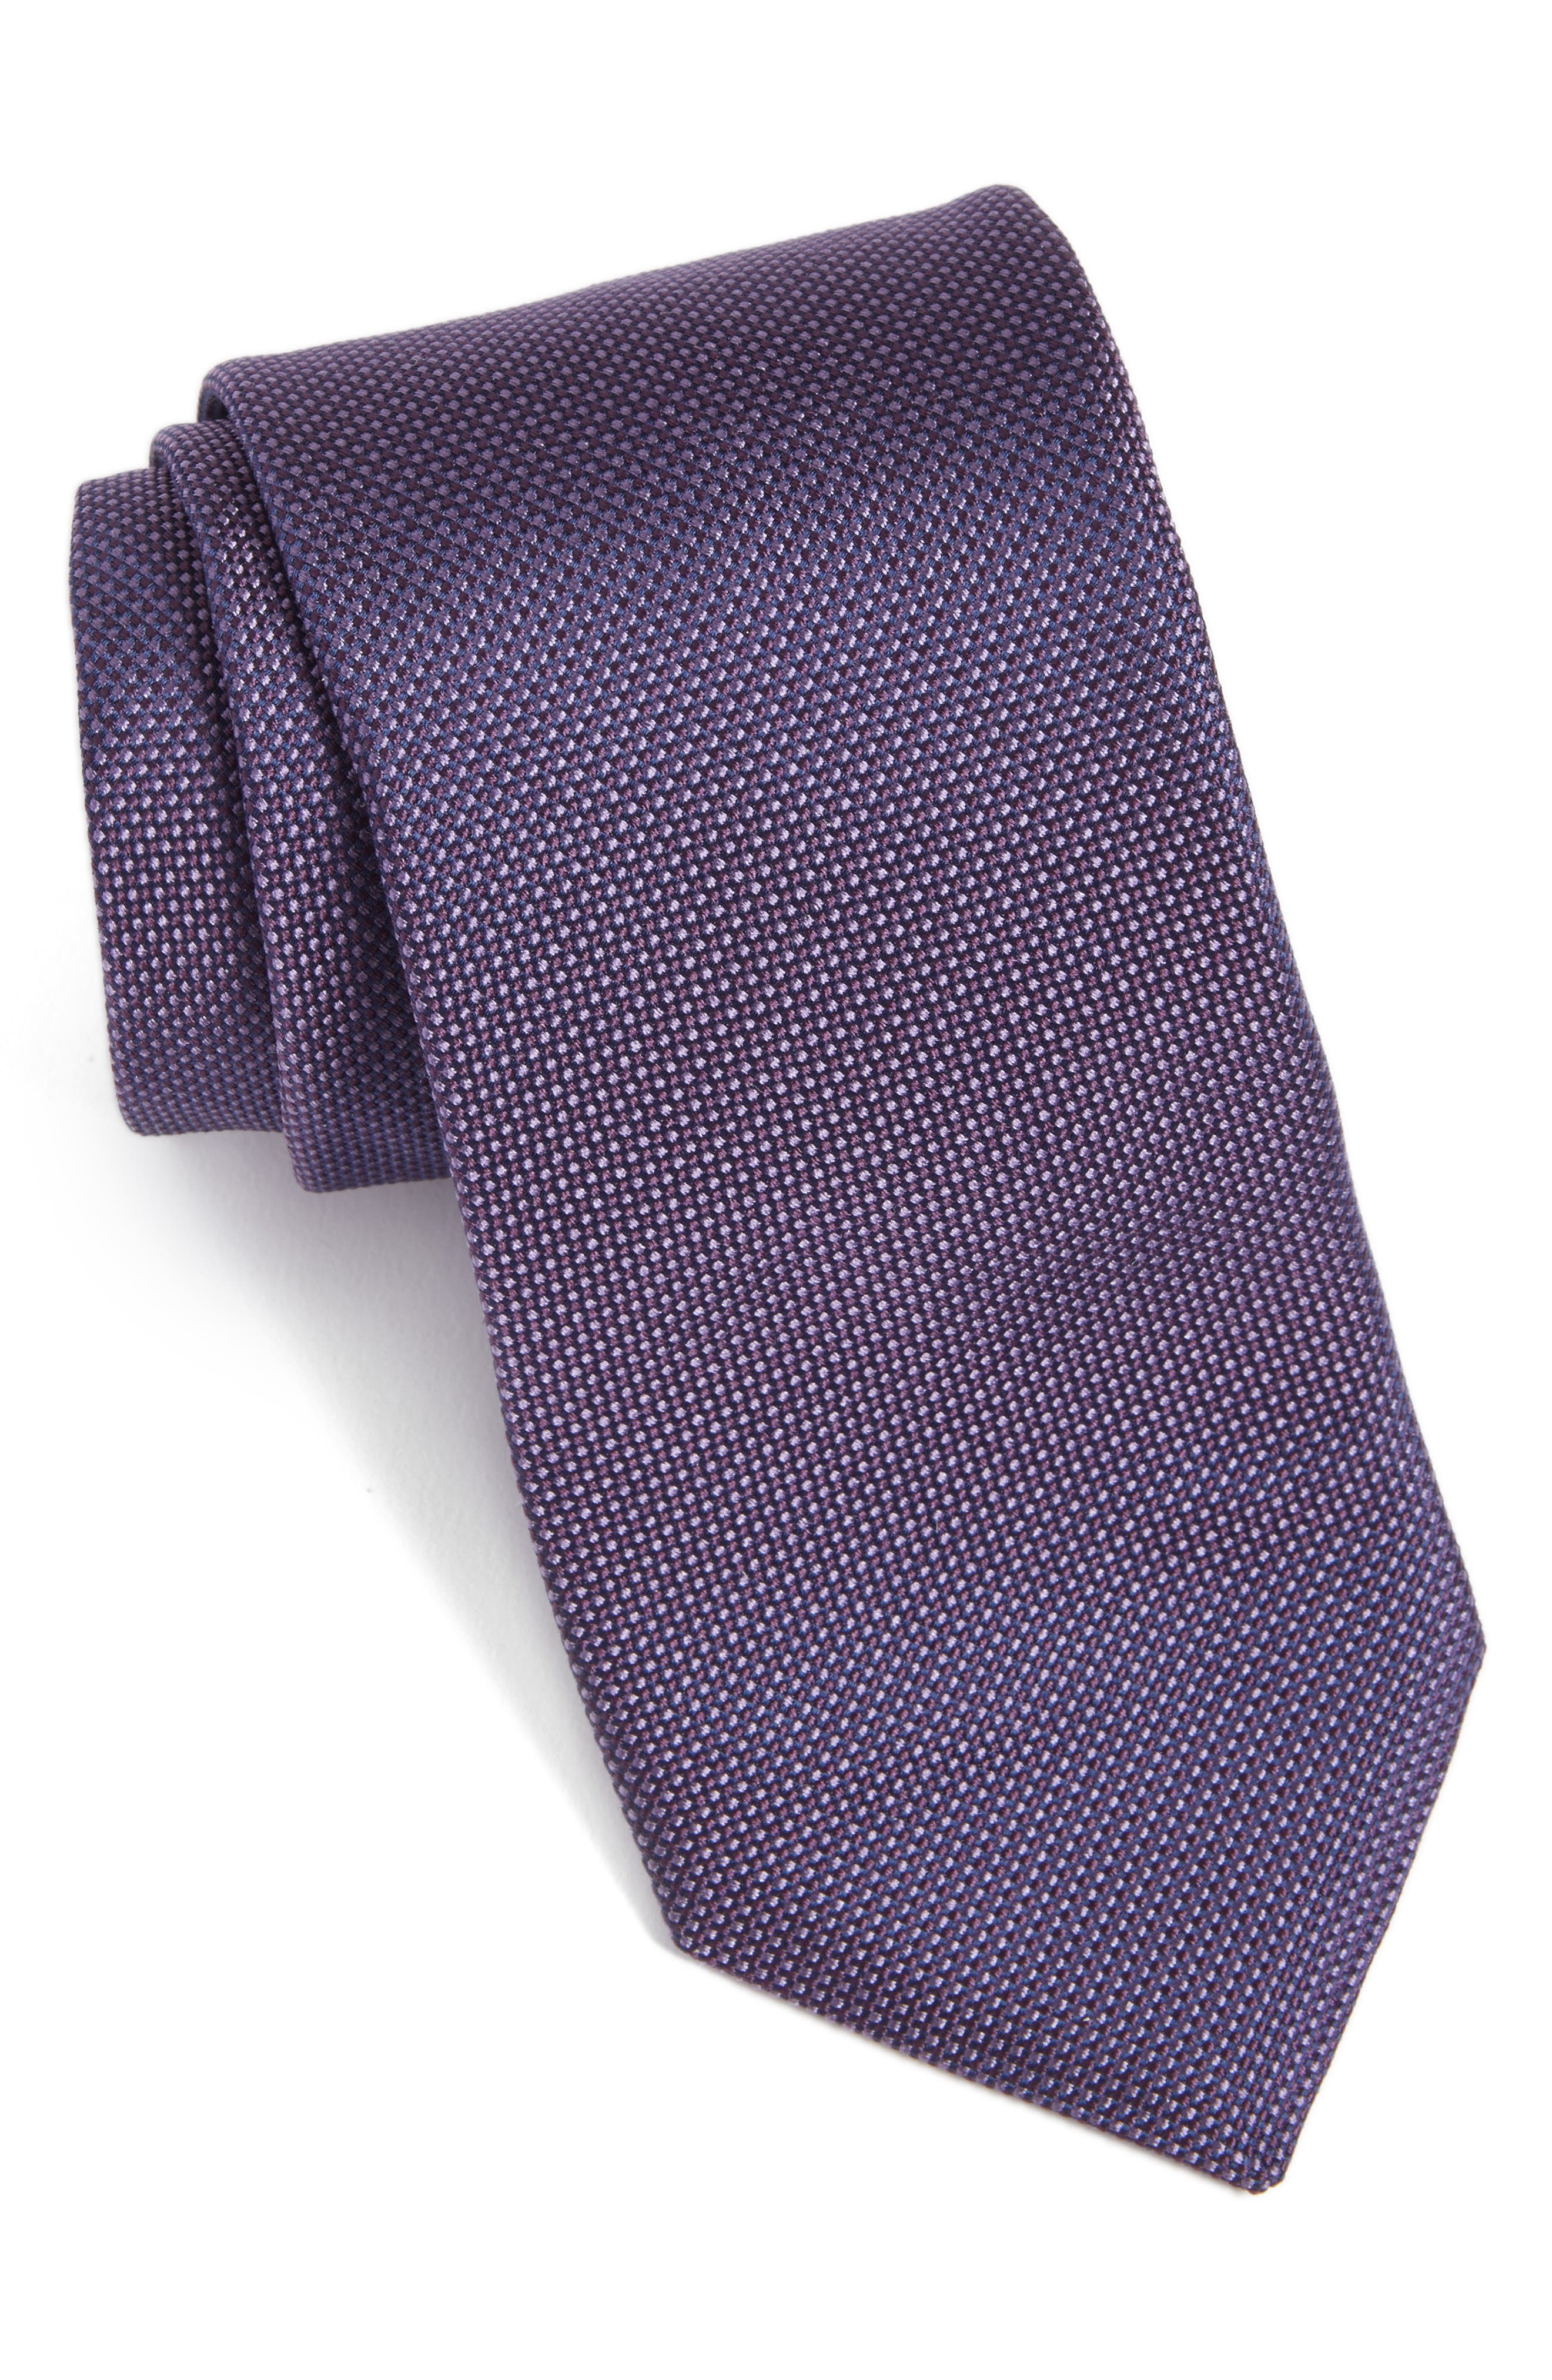 Main Image - Ted Baker London Solid Silk Tie